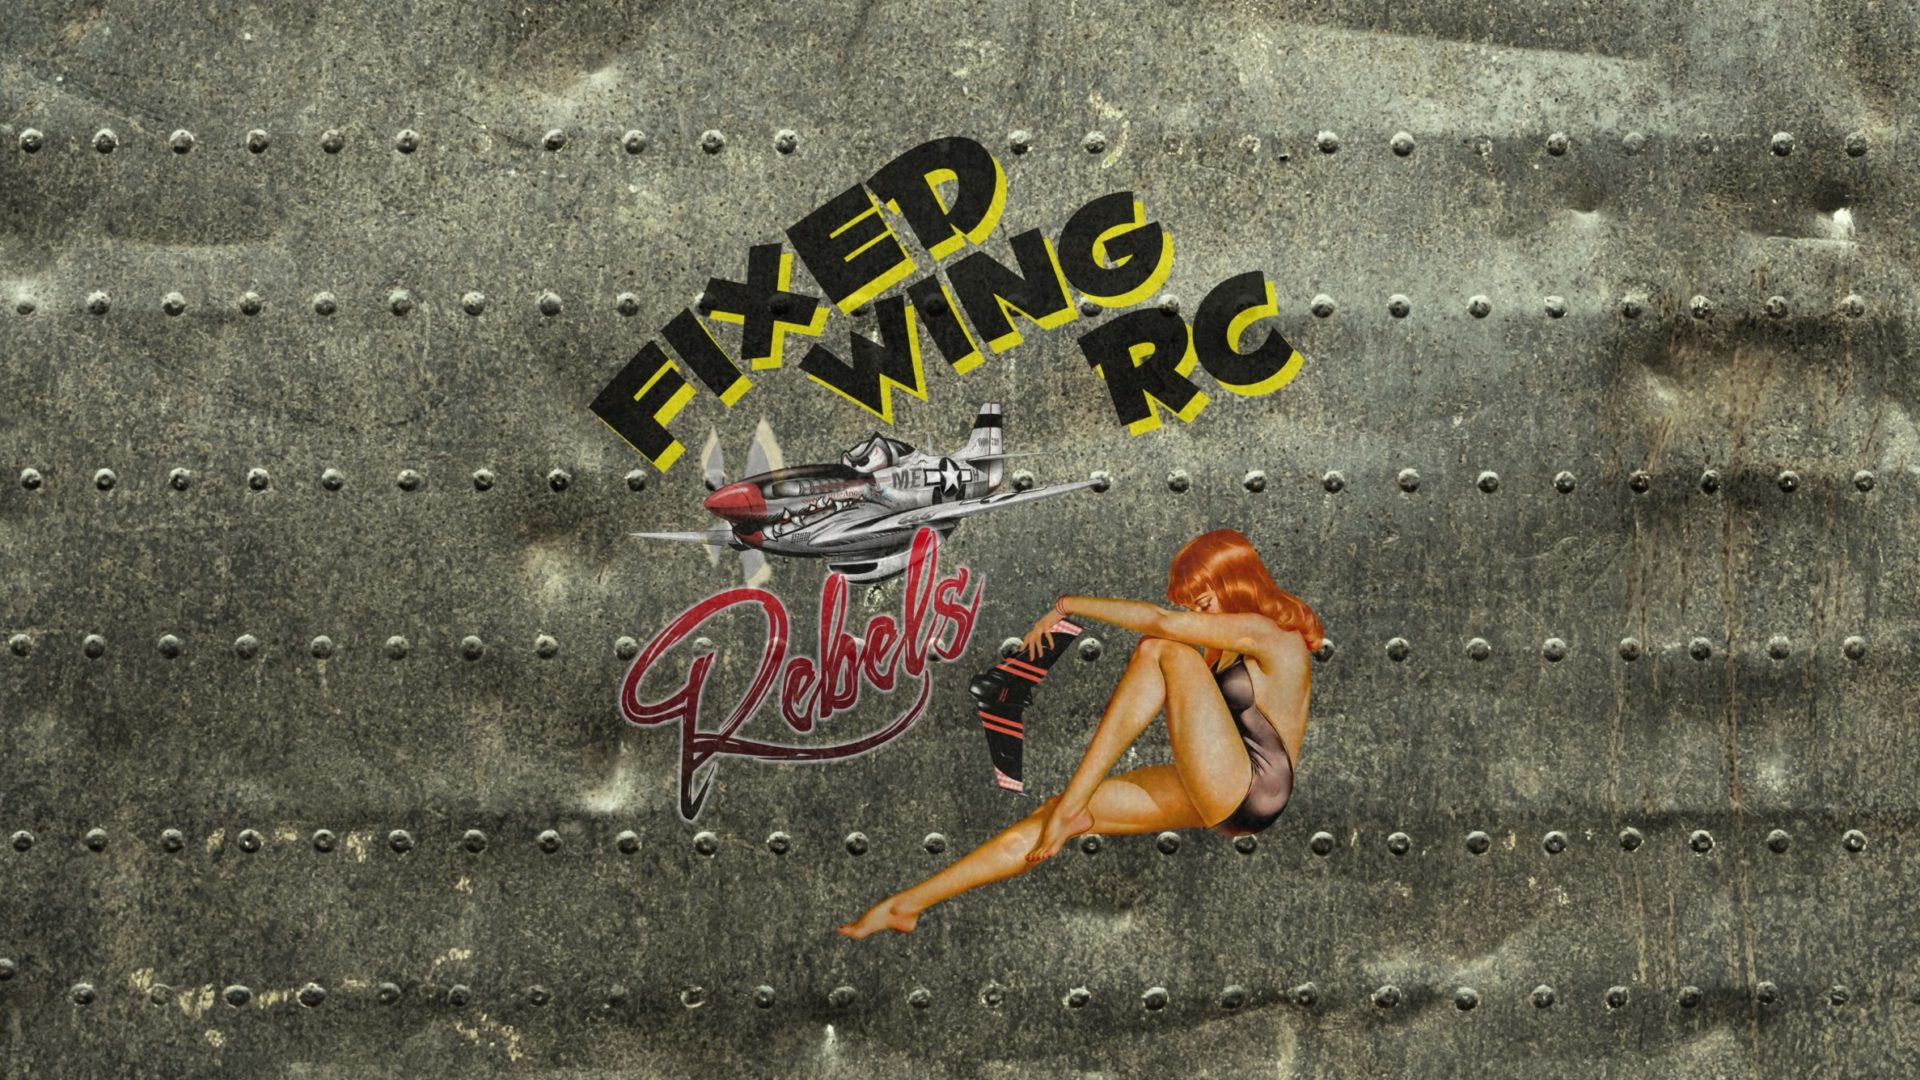 Fixed Wing RC Rebels